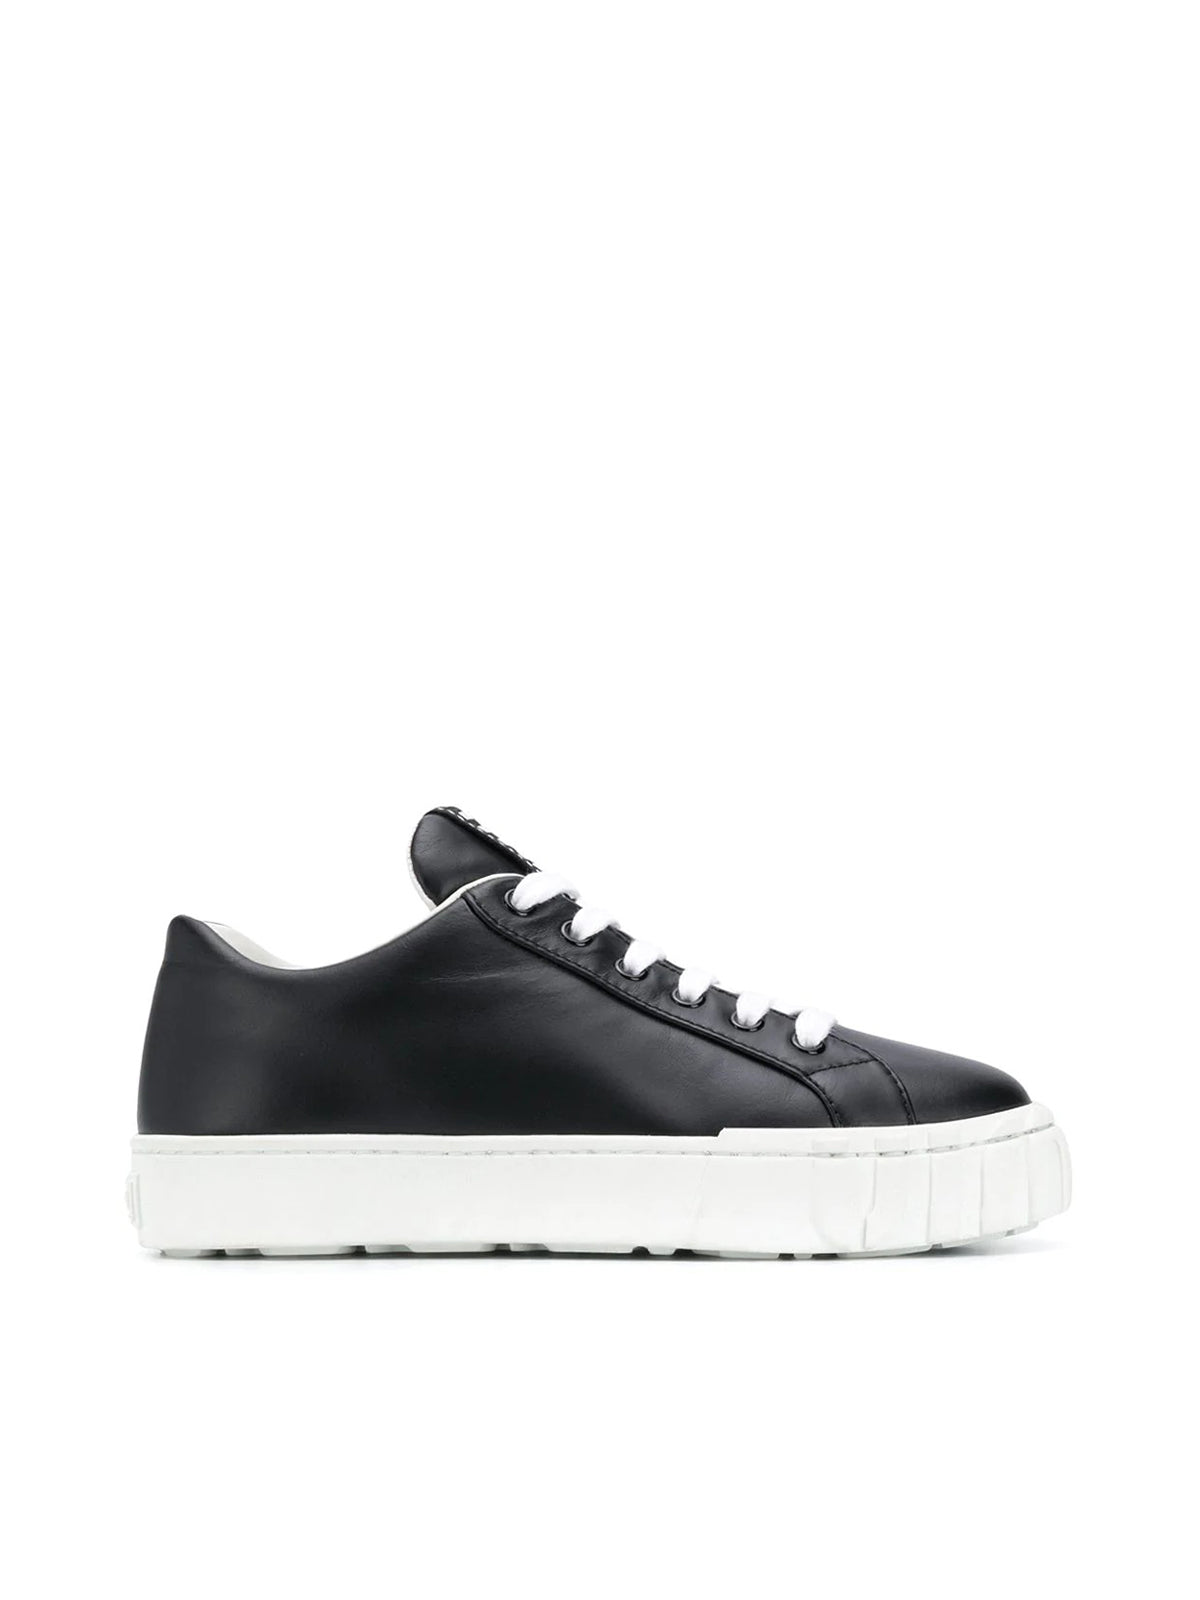 Miu Miu LACE-UP LEATHER SNEAKERS